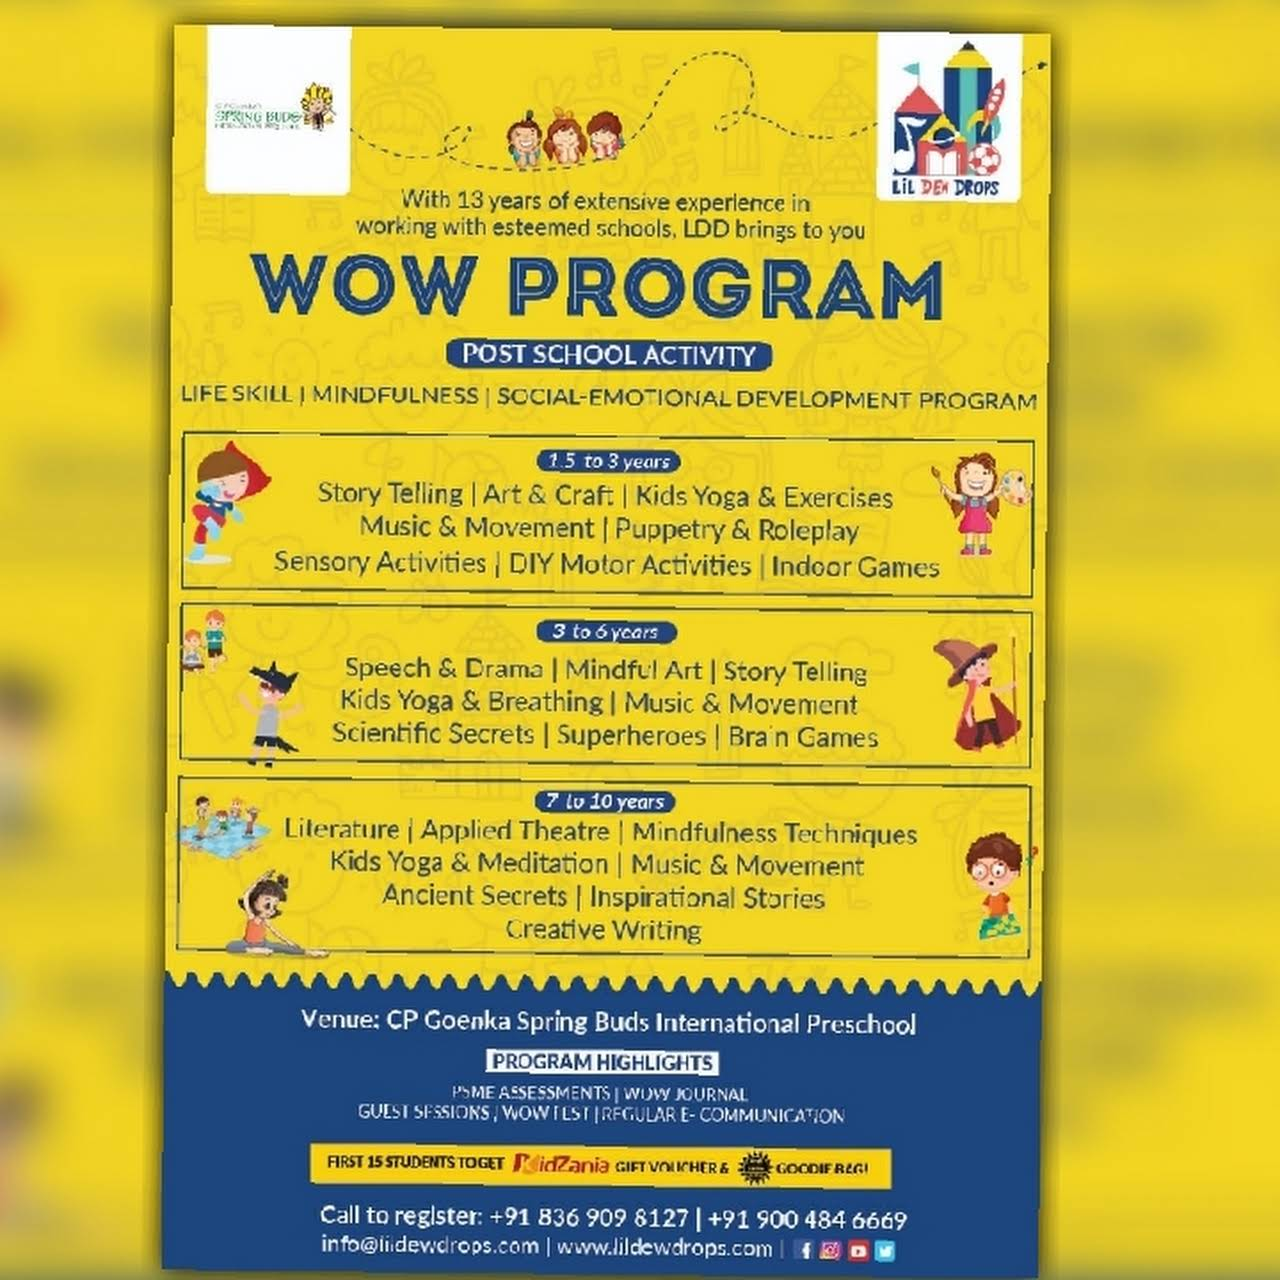 LiL Dew Drops - Life Skill Excellence Program for Kids